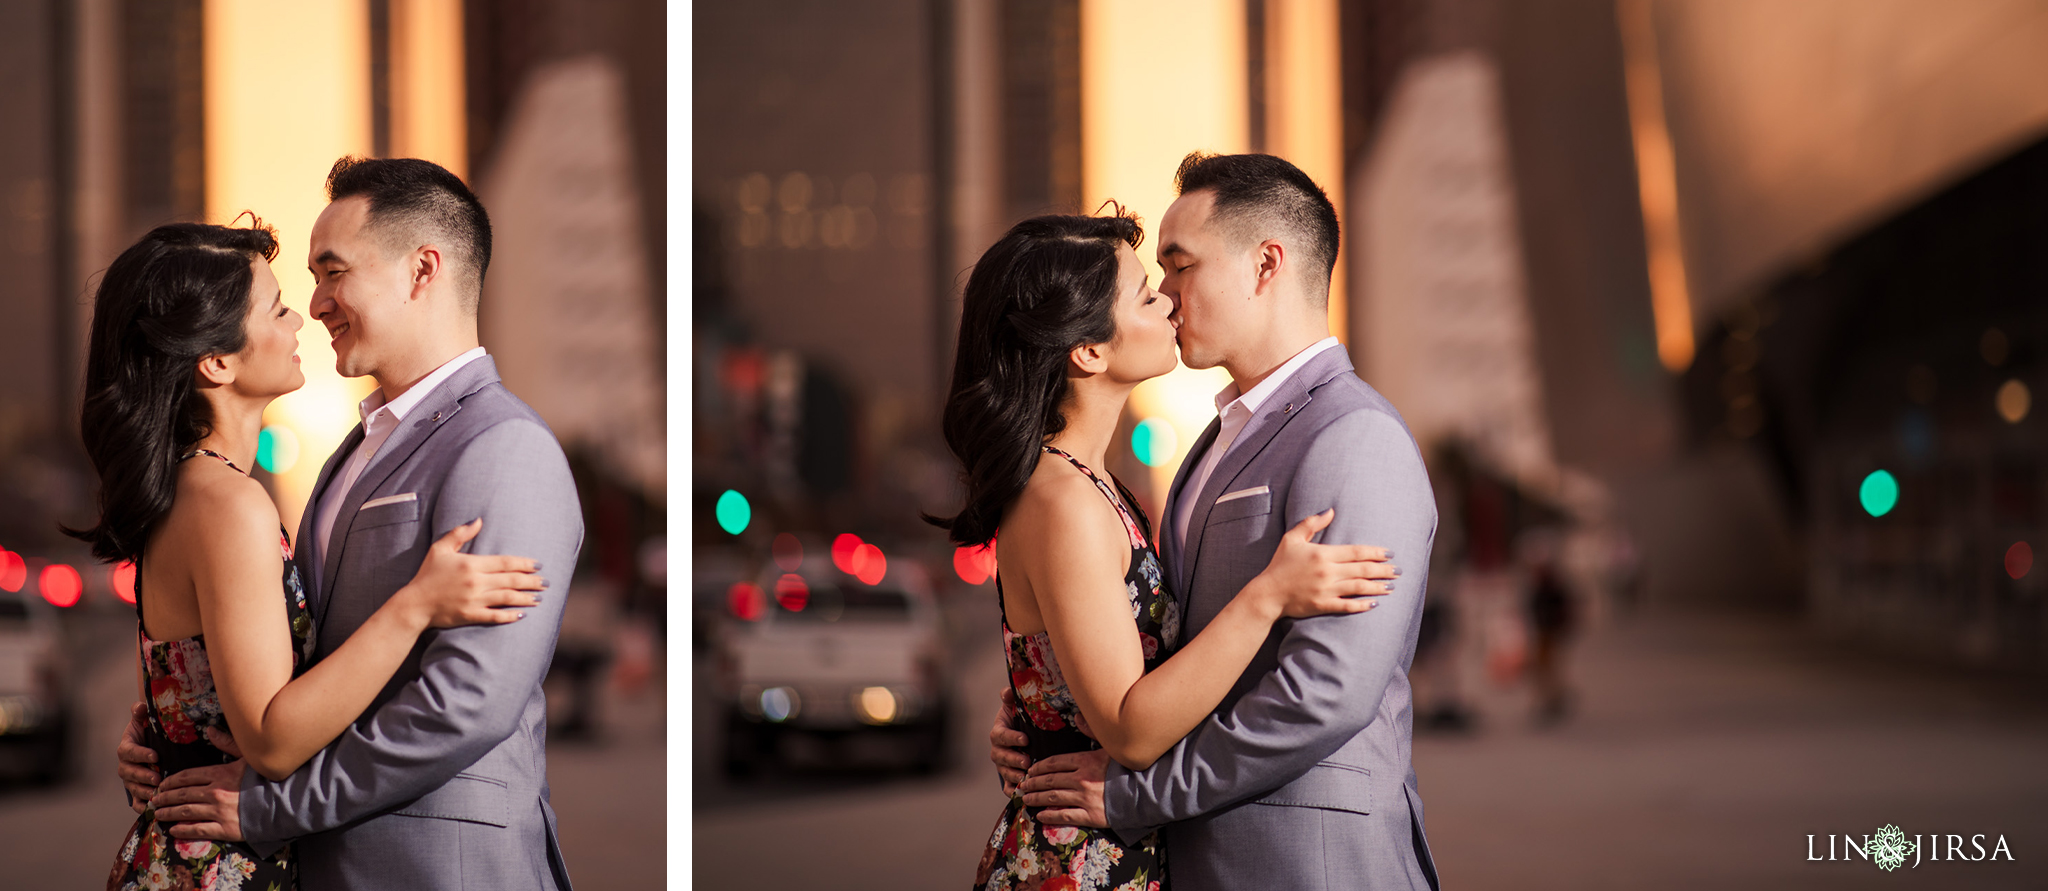 15 downtown los angeles engagement photography